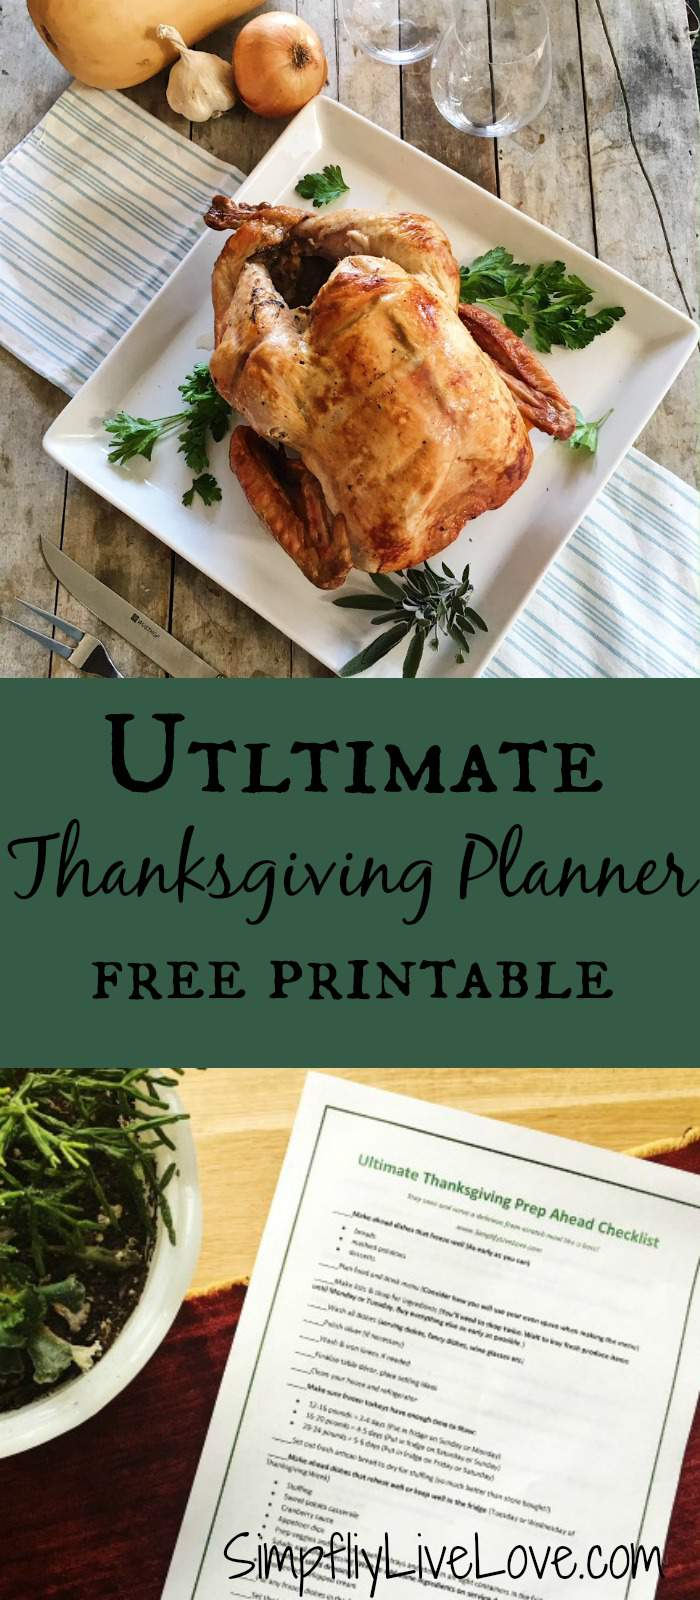 Don't make mistakes this Thanksgiving. Keep Organized with this handy free printable Thanksgiving Planner!